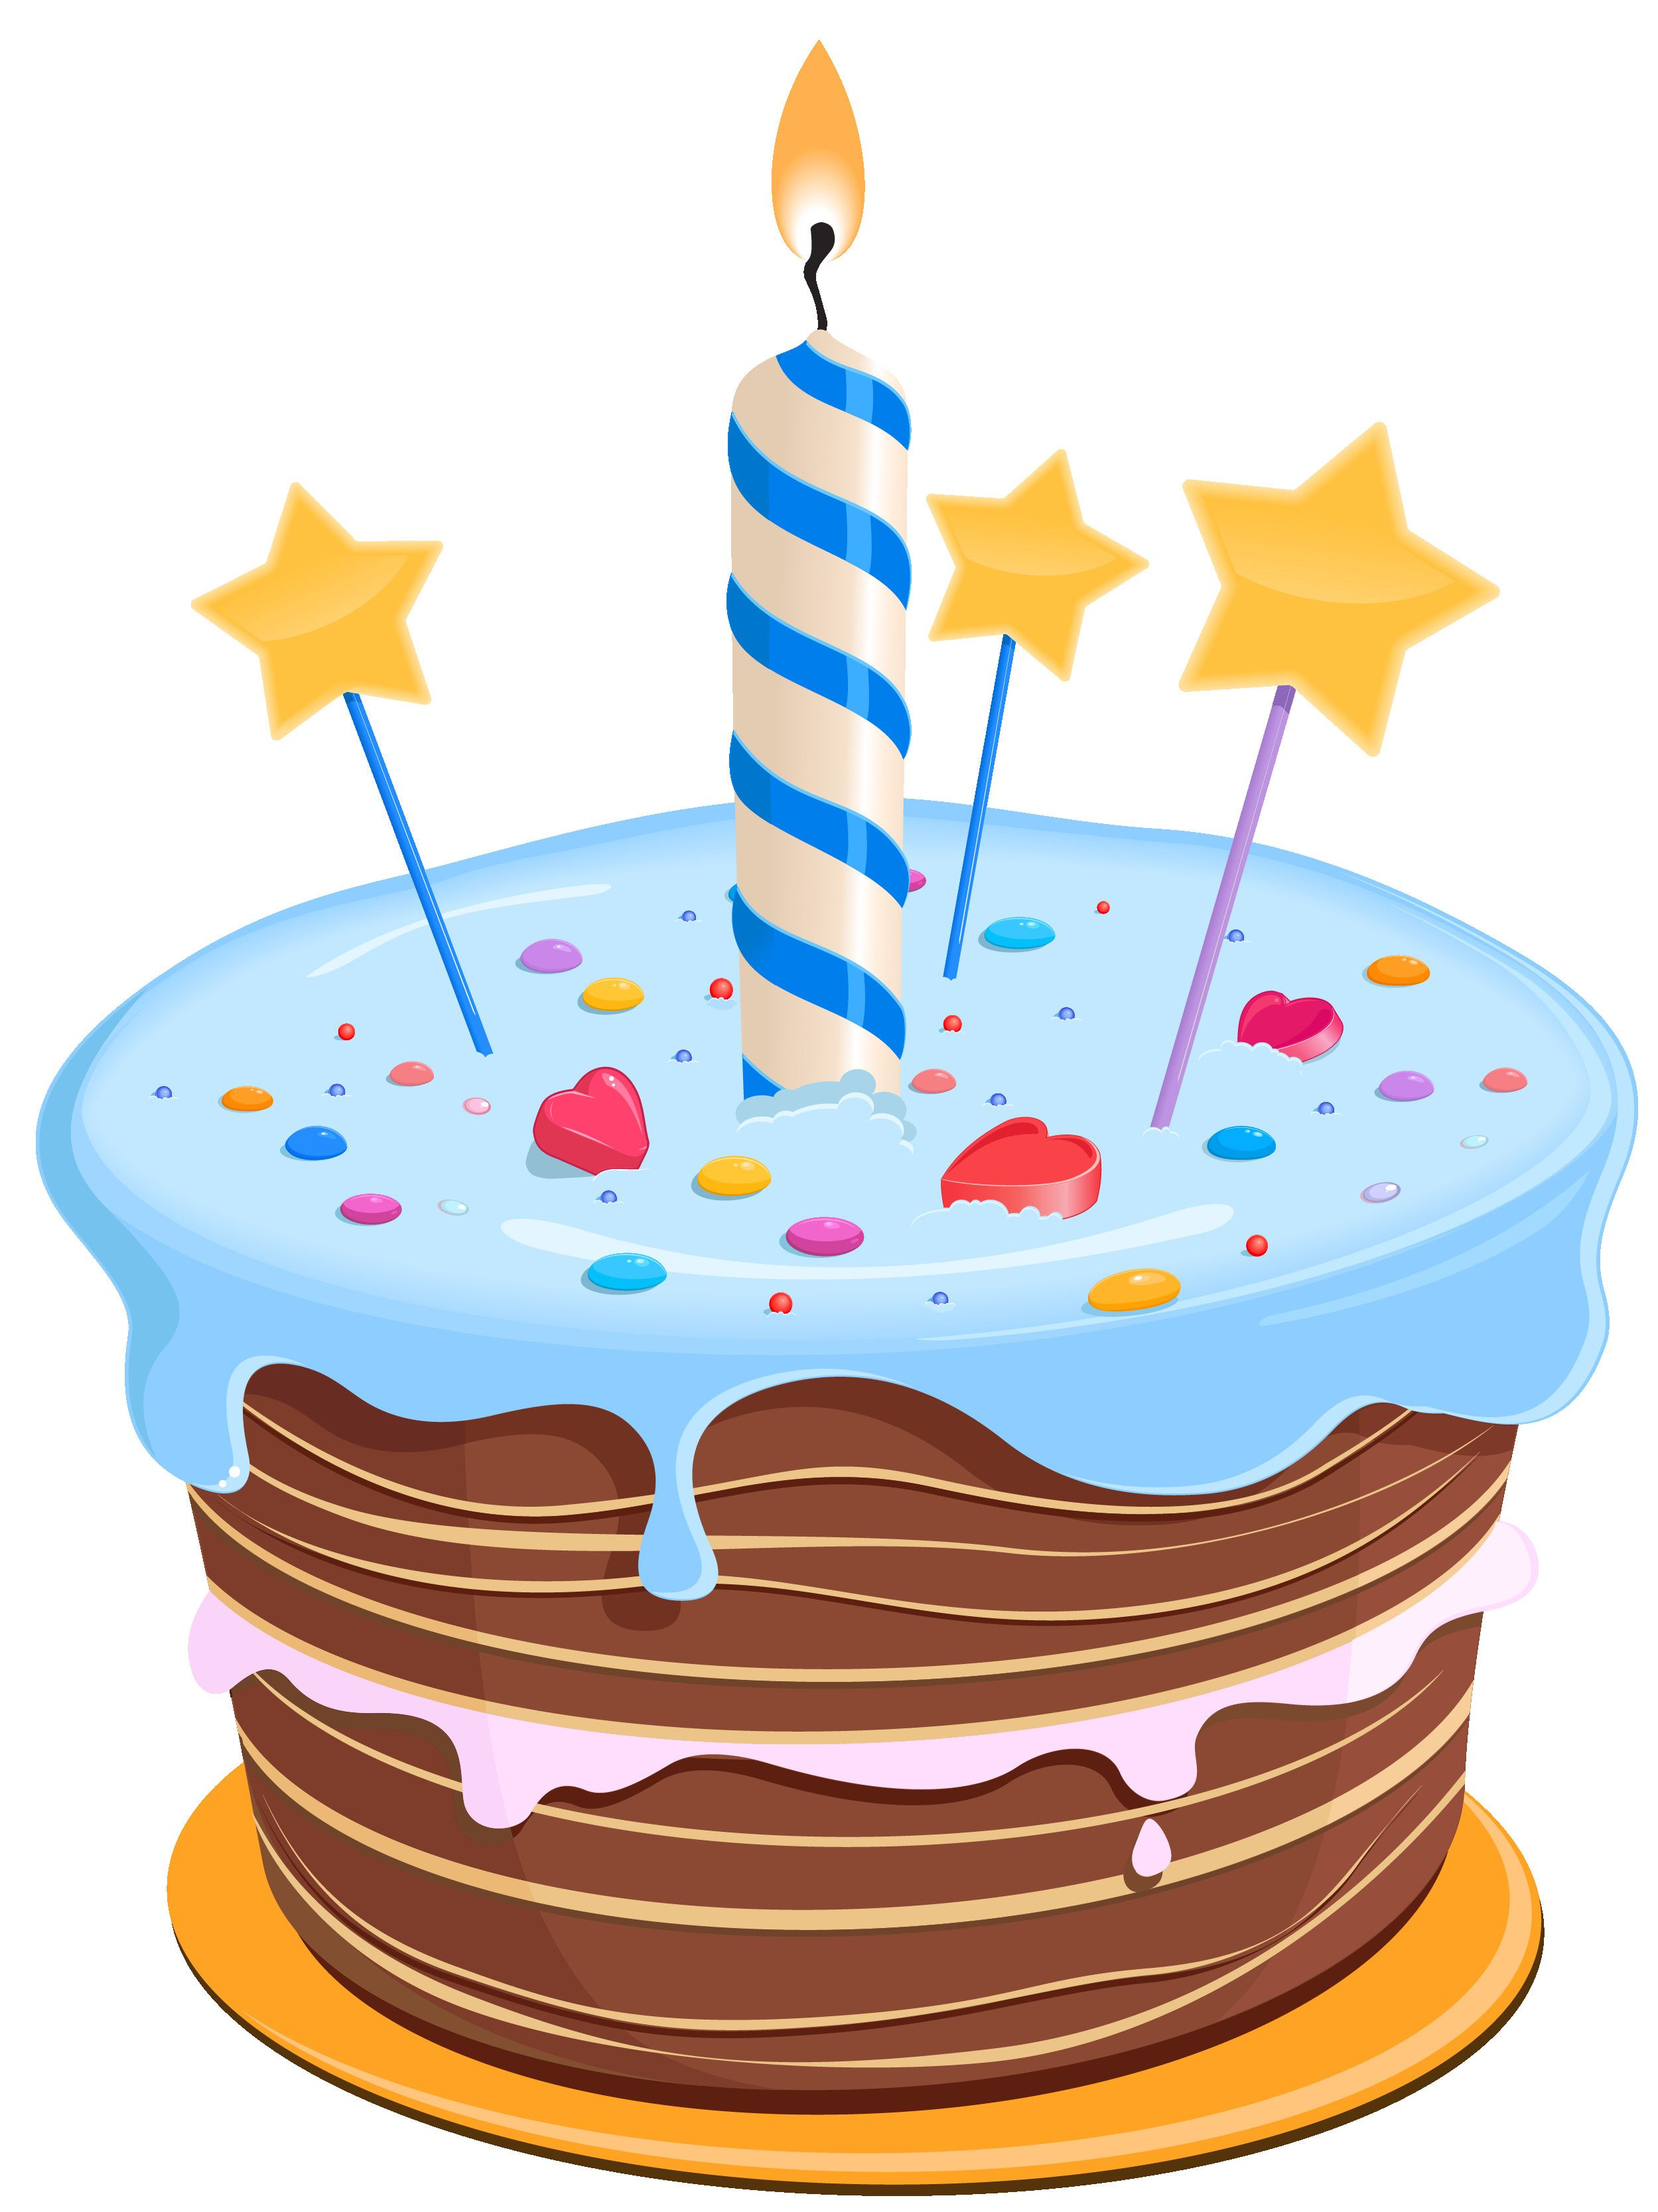 Birthday Cake Png Clipart 20 Ideas For Birthday Cake Png Ulang